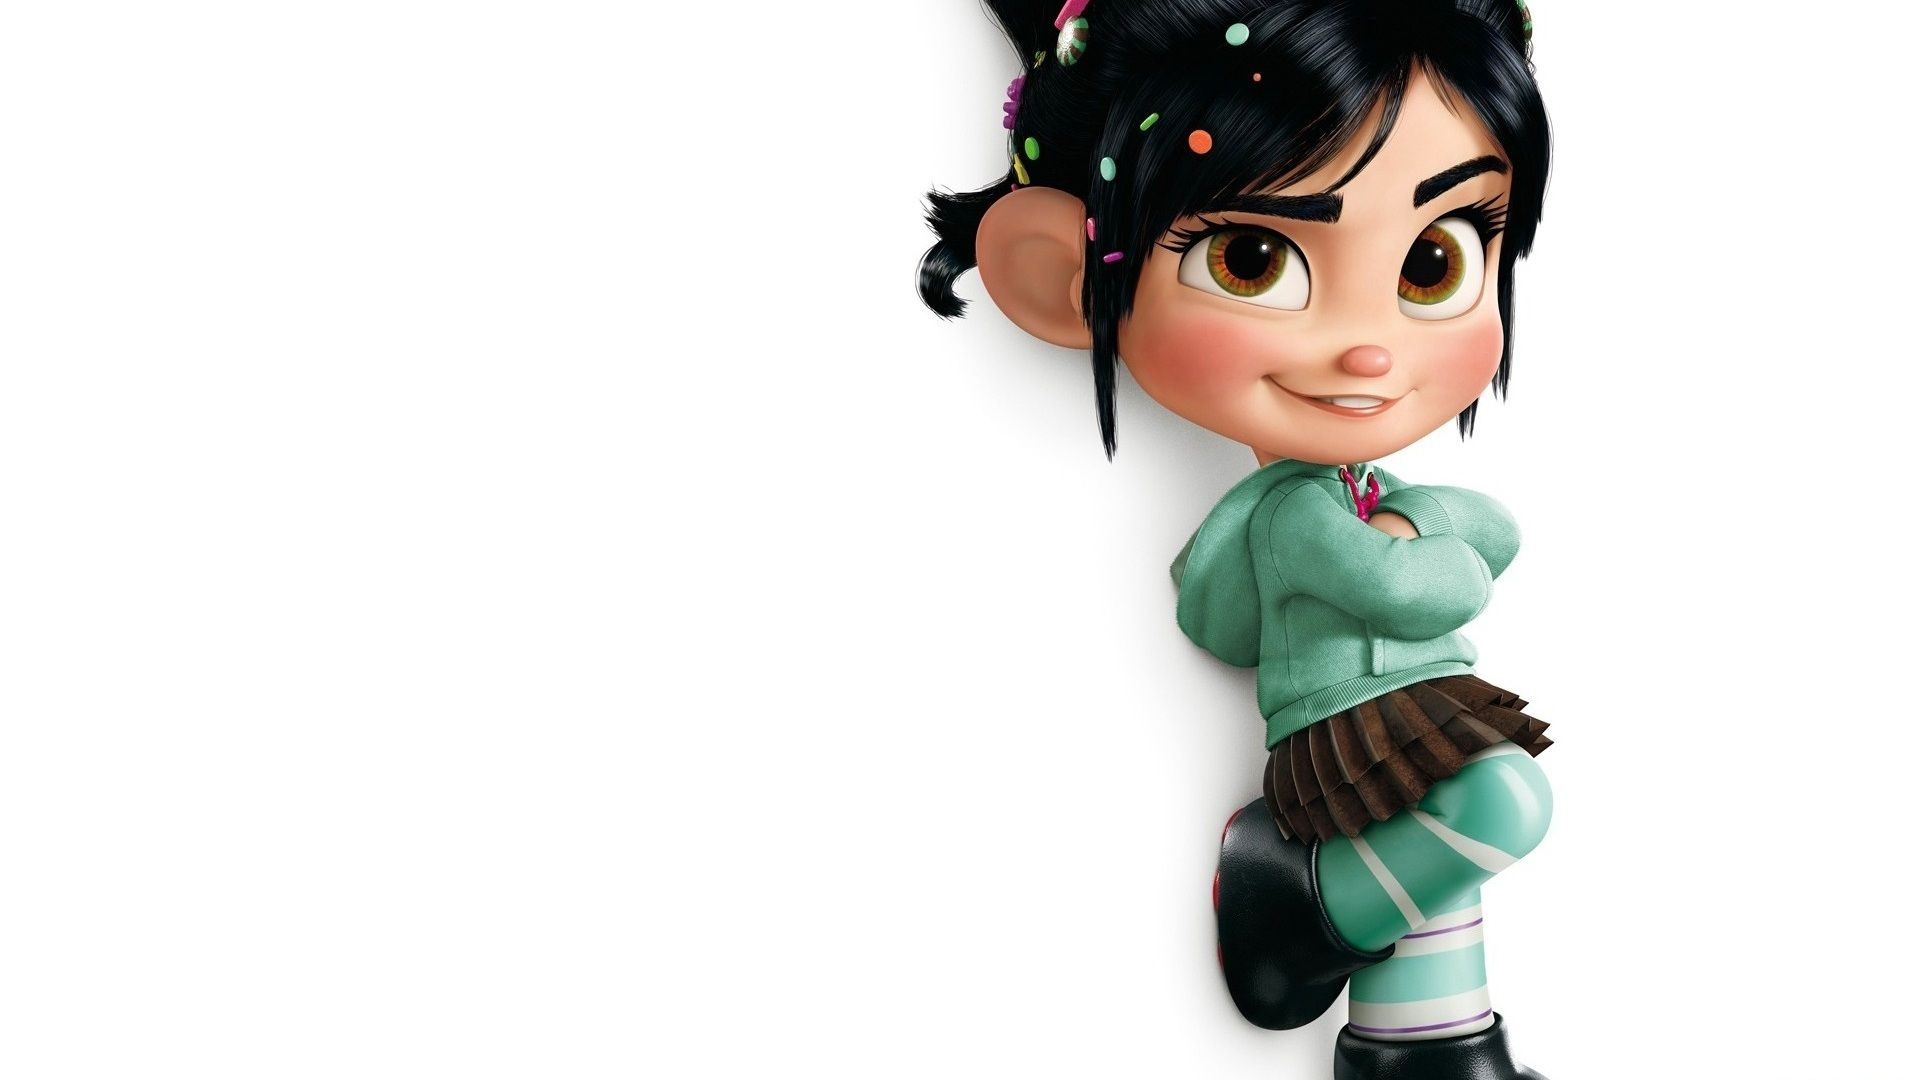 vanellopa 1000+ images about Ralph and Vanellope on Pinterest | Wreck it ralph, deviantART and Disney artists